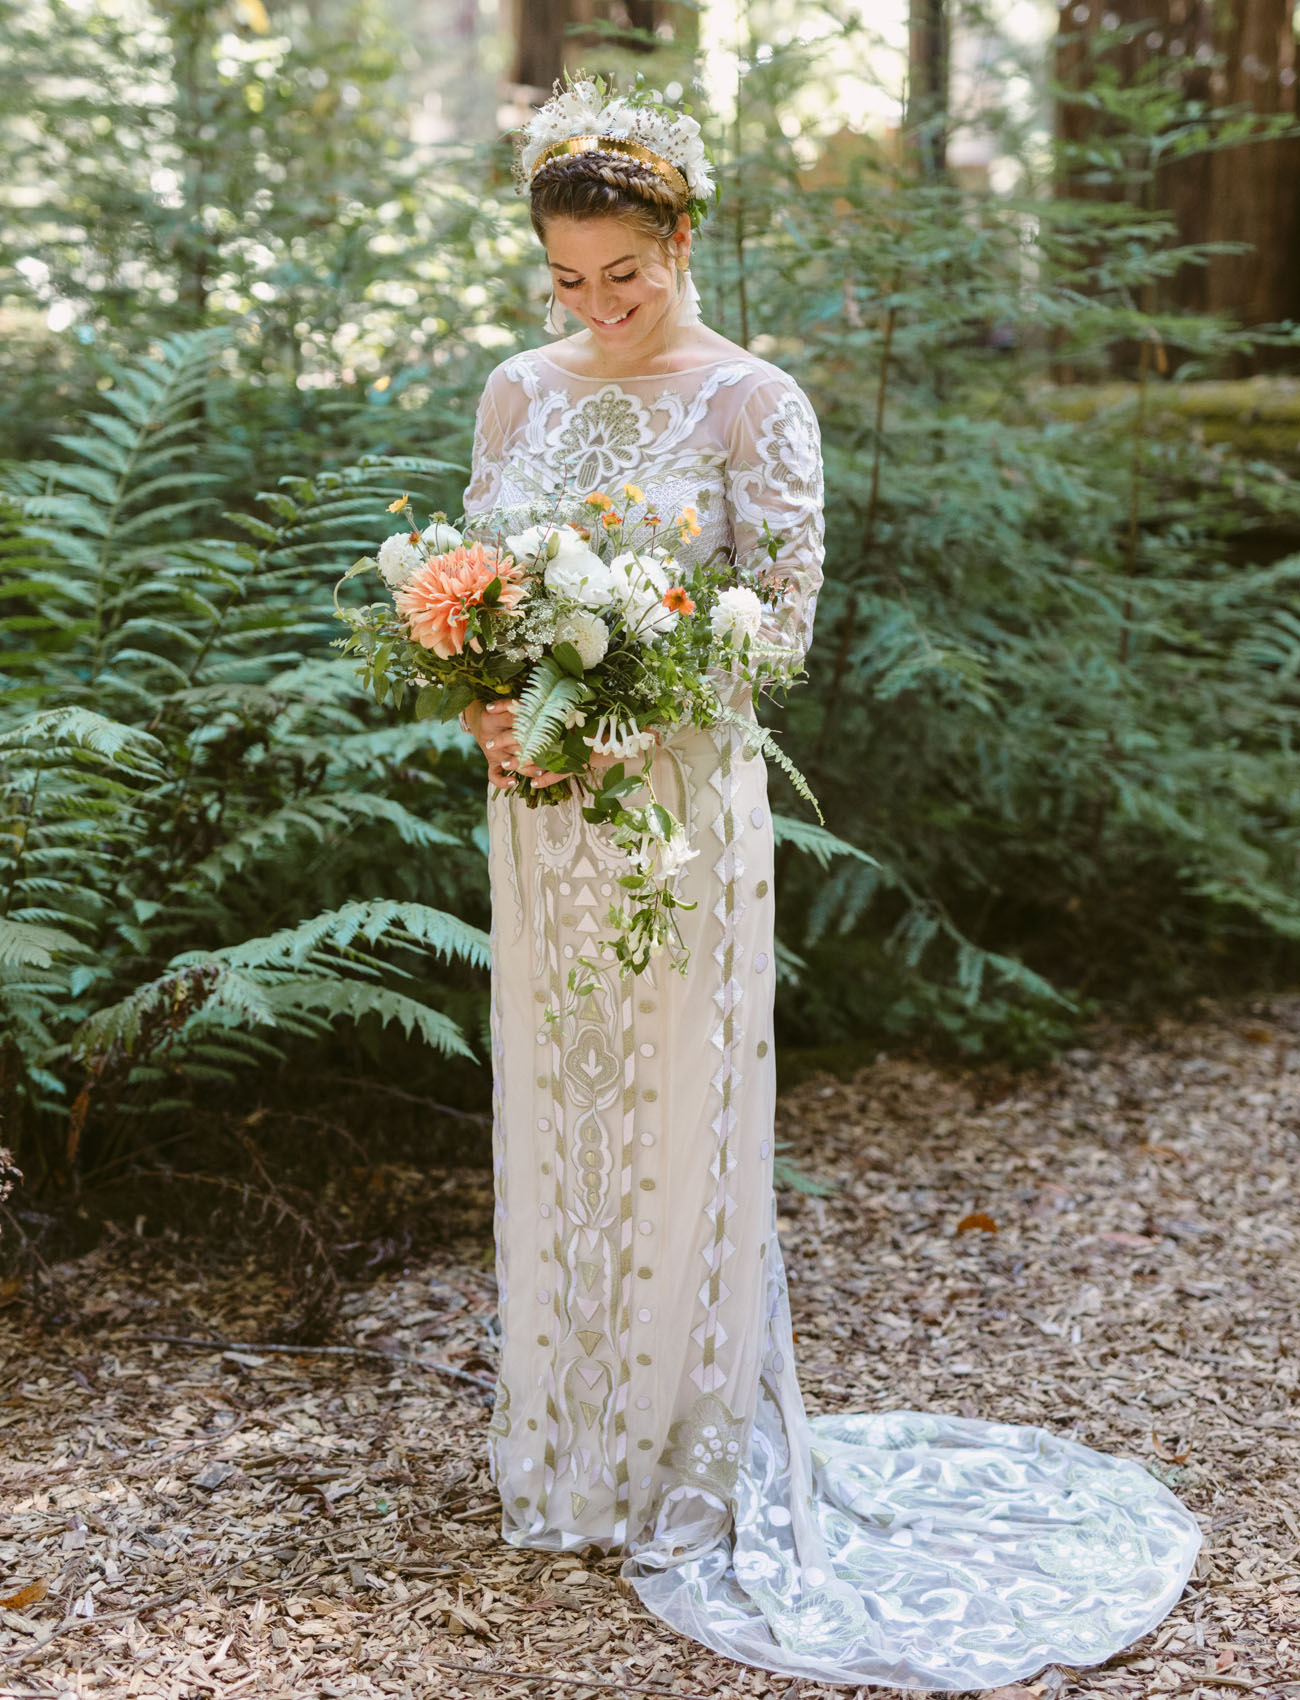 Obelia by Temperley Bridal Dress